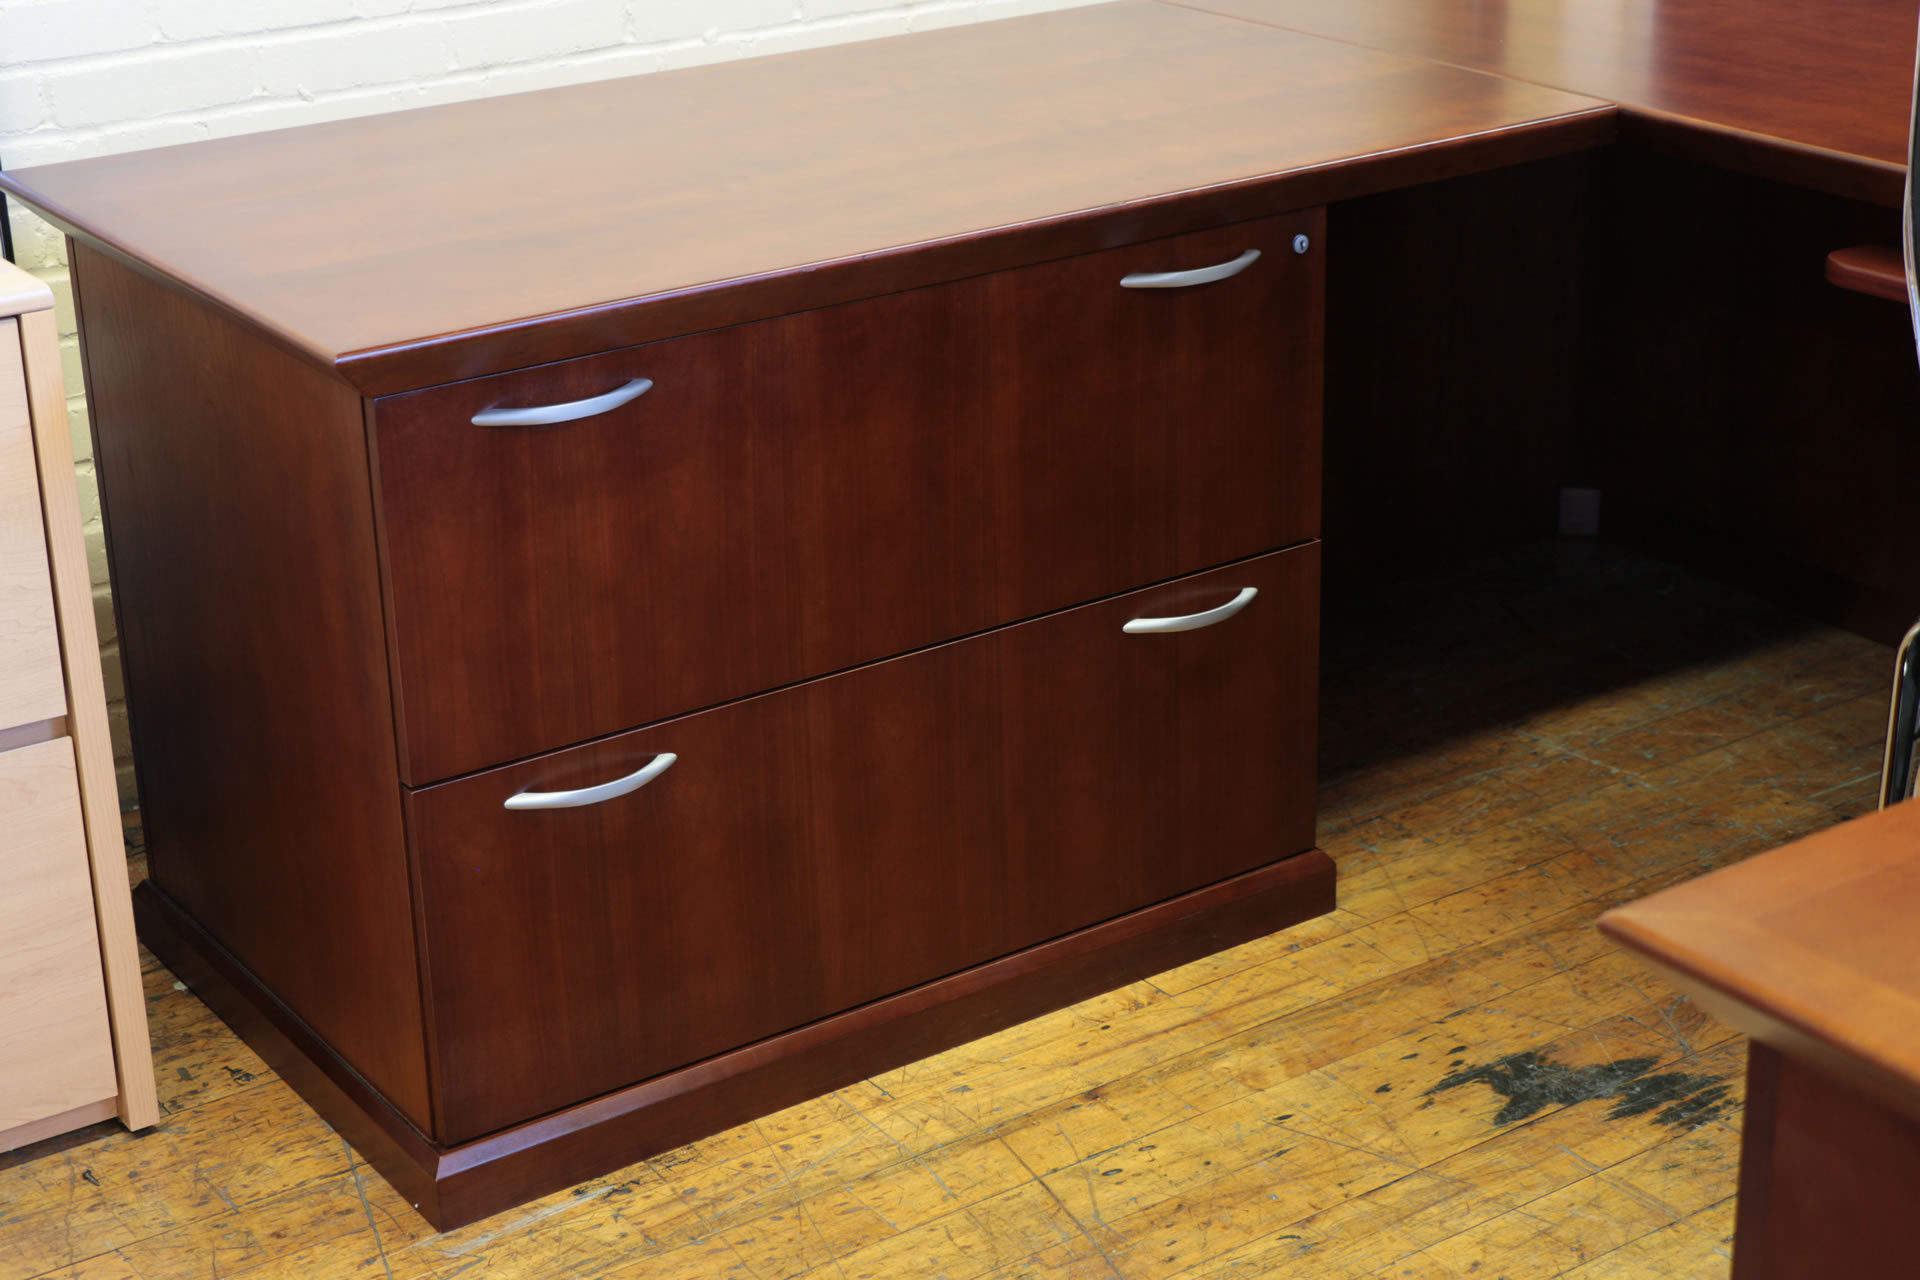 peartreeofficefurniture_peartreeofficefurniture_peartreeofficefurniture_img_9427.jpg